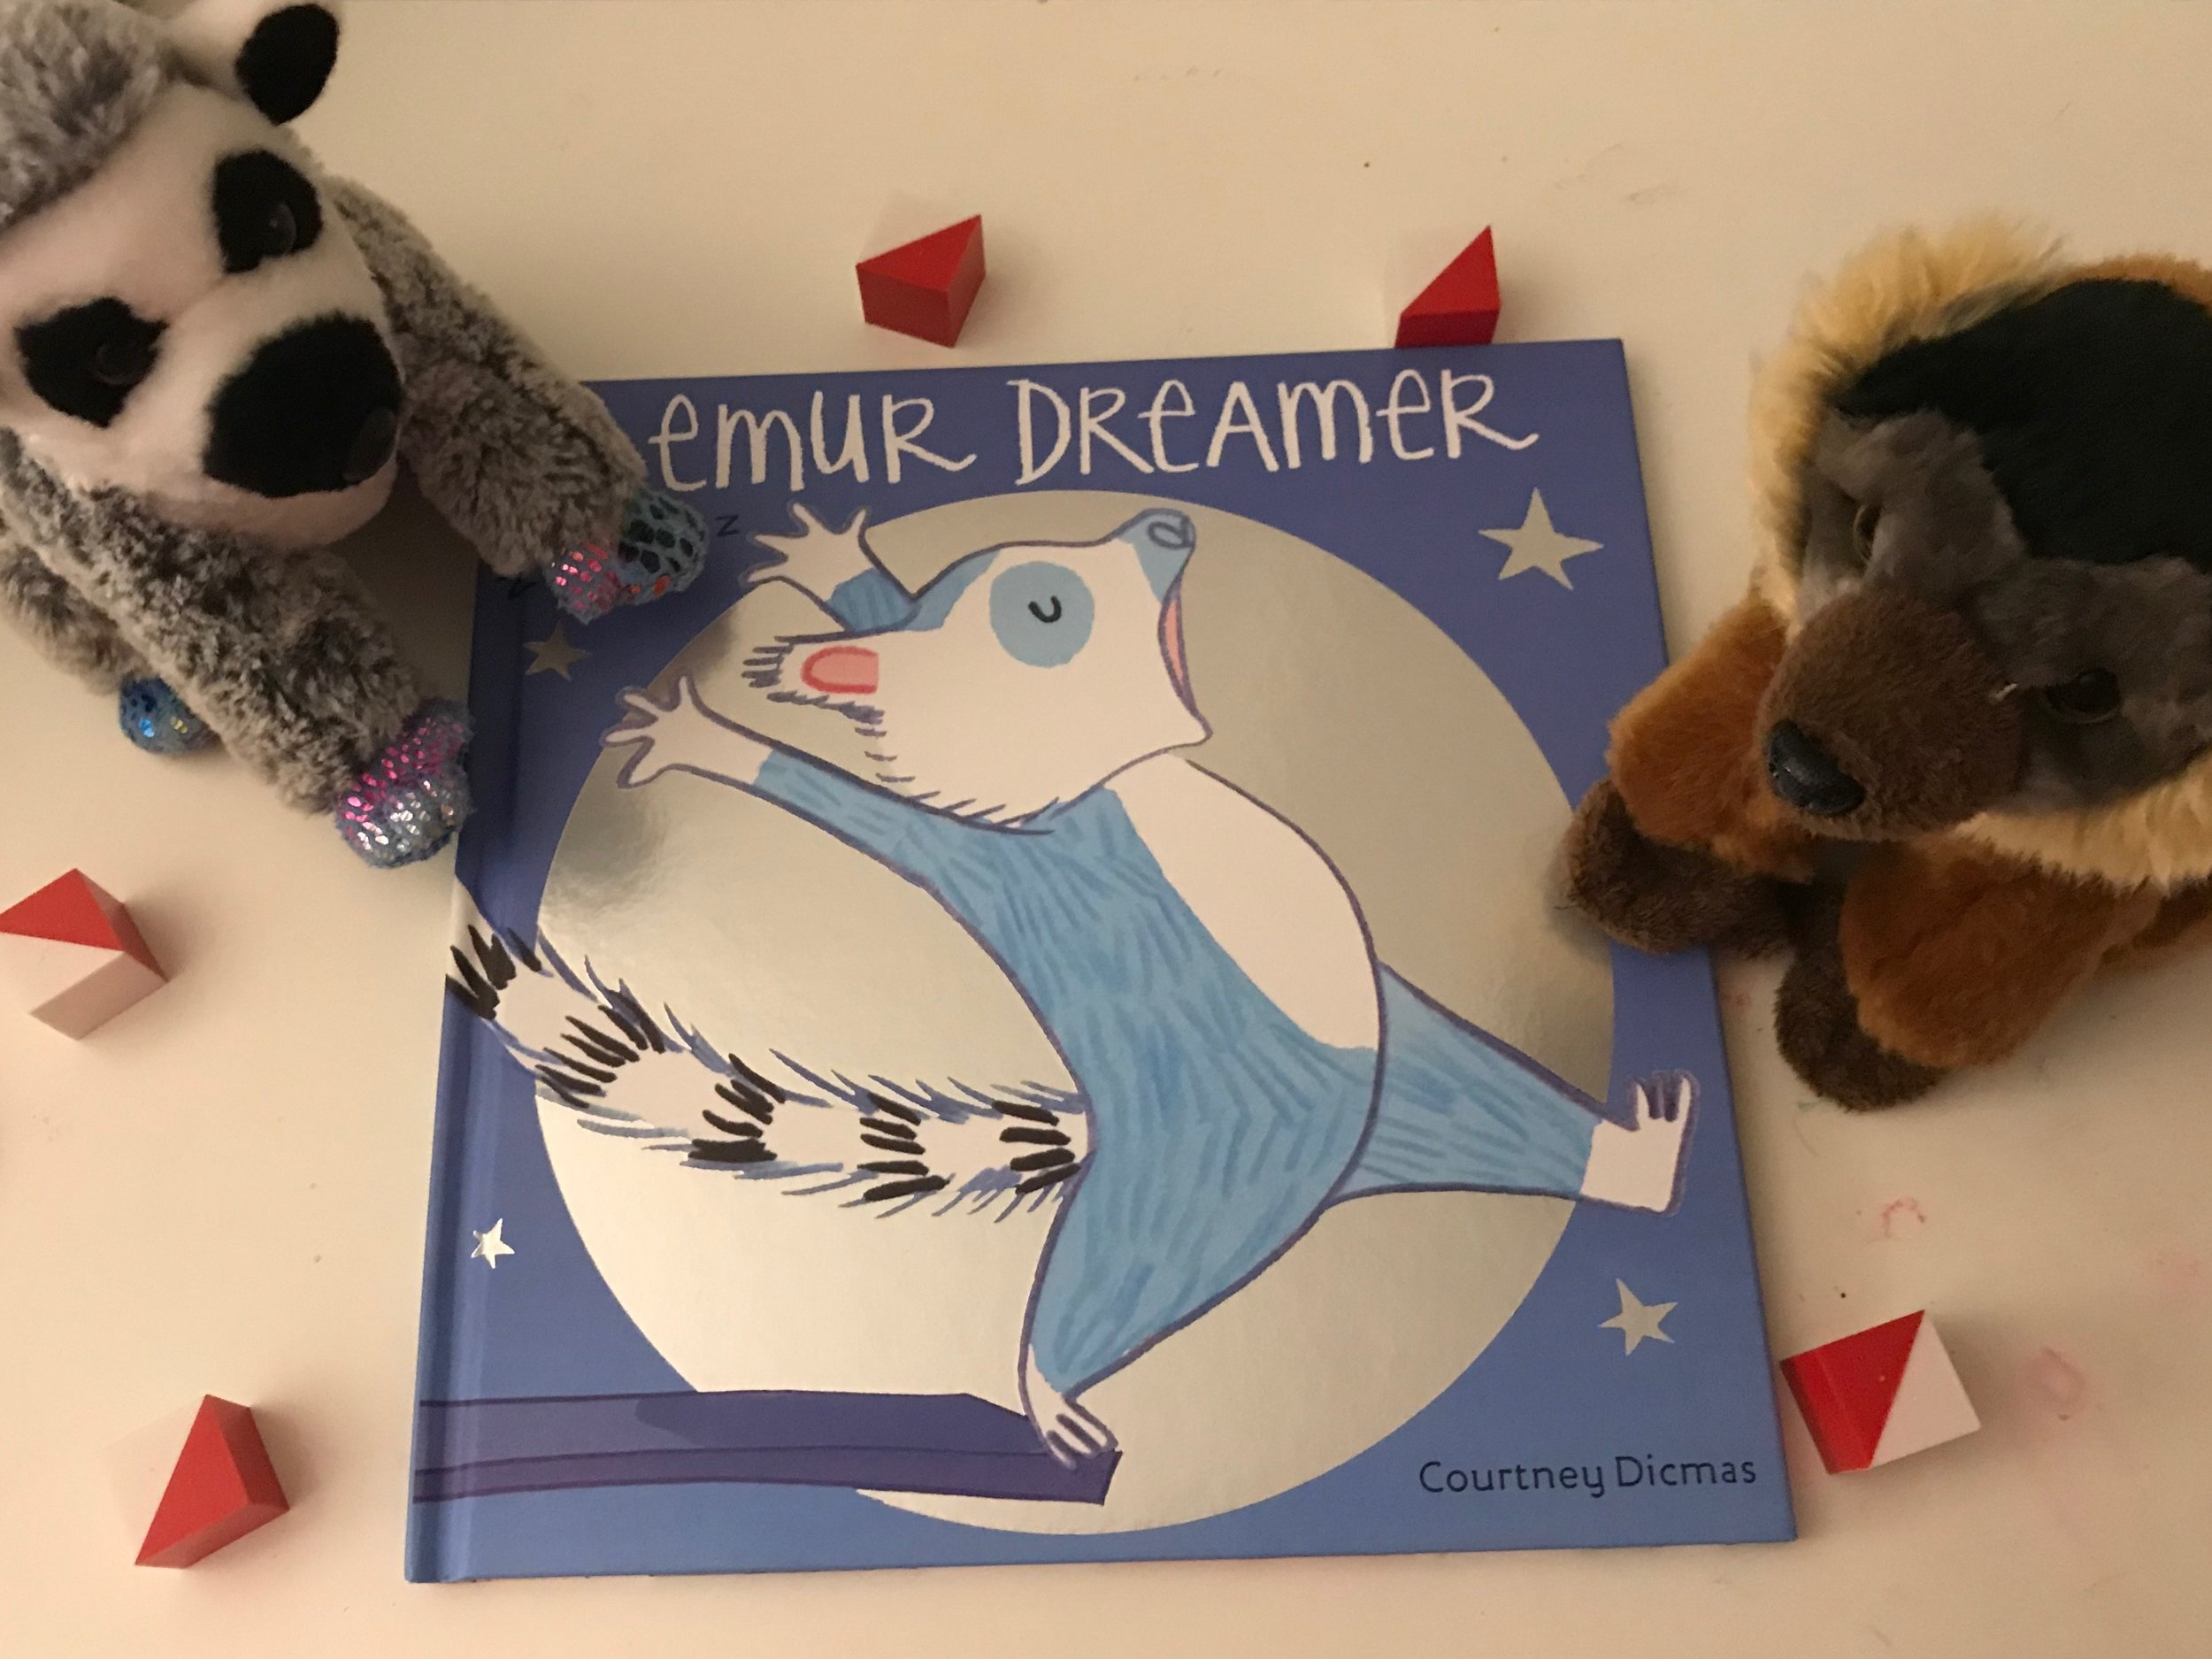 Lemur has a problem, a big problem... he's a sleepwalker. This delightful story is about how friends rally around each other to take care of one another. The ending has the BEST surprise!!!   Grab some stuffed animals and play along as the friends try to help Lemur as he sleep walks.    Find Lemur dreamer here